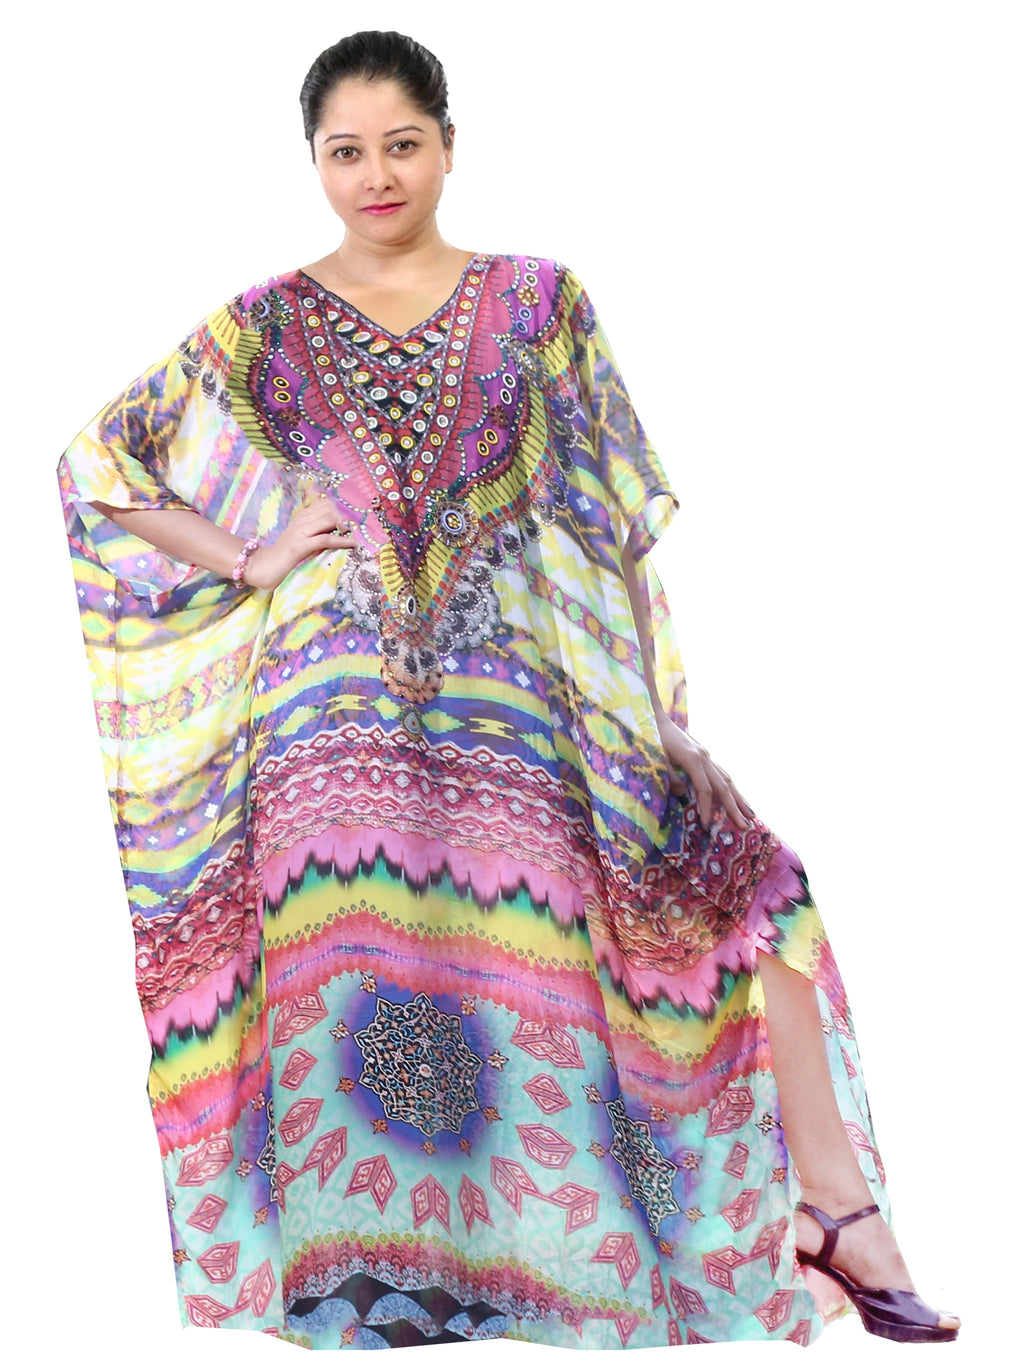 Party dresses kaftan Kaftan clothing Beautiful kaftan Designer kaftan Kaftan gown online Hand made kaftanEvening kaftan - Silk kaftan